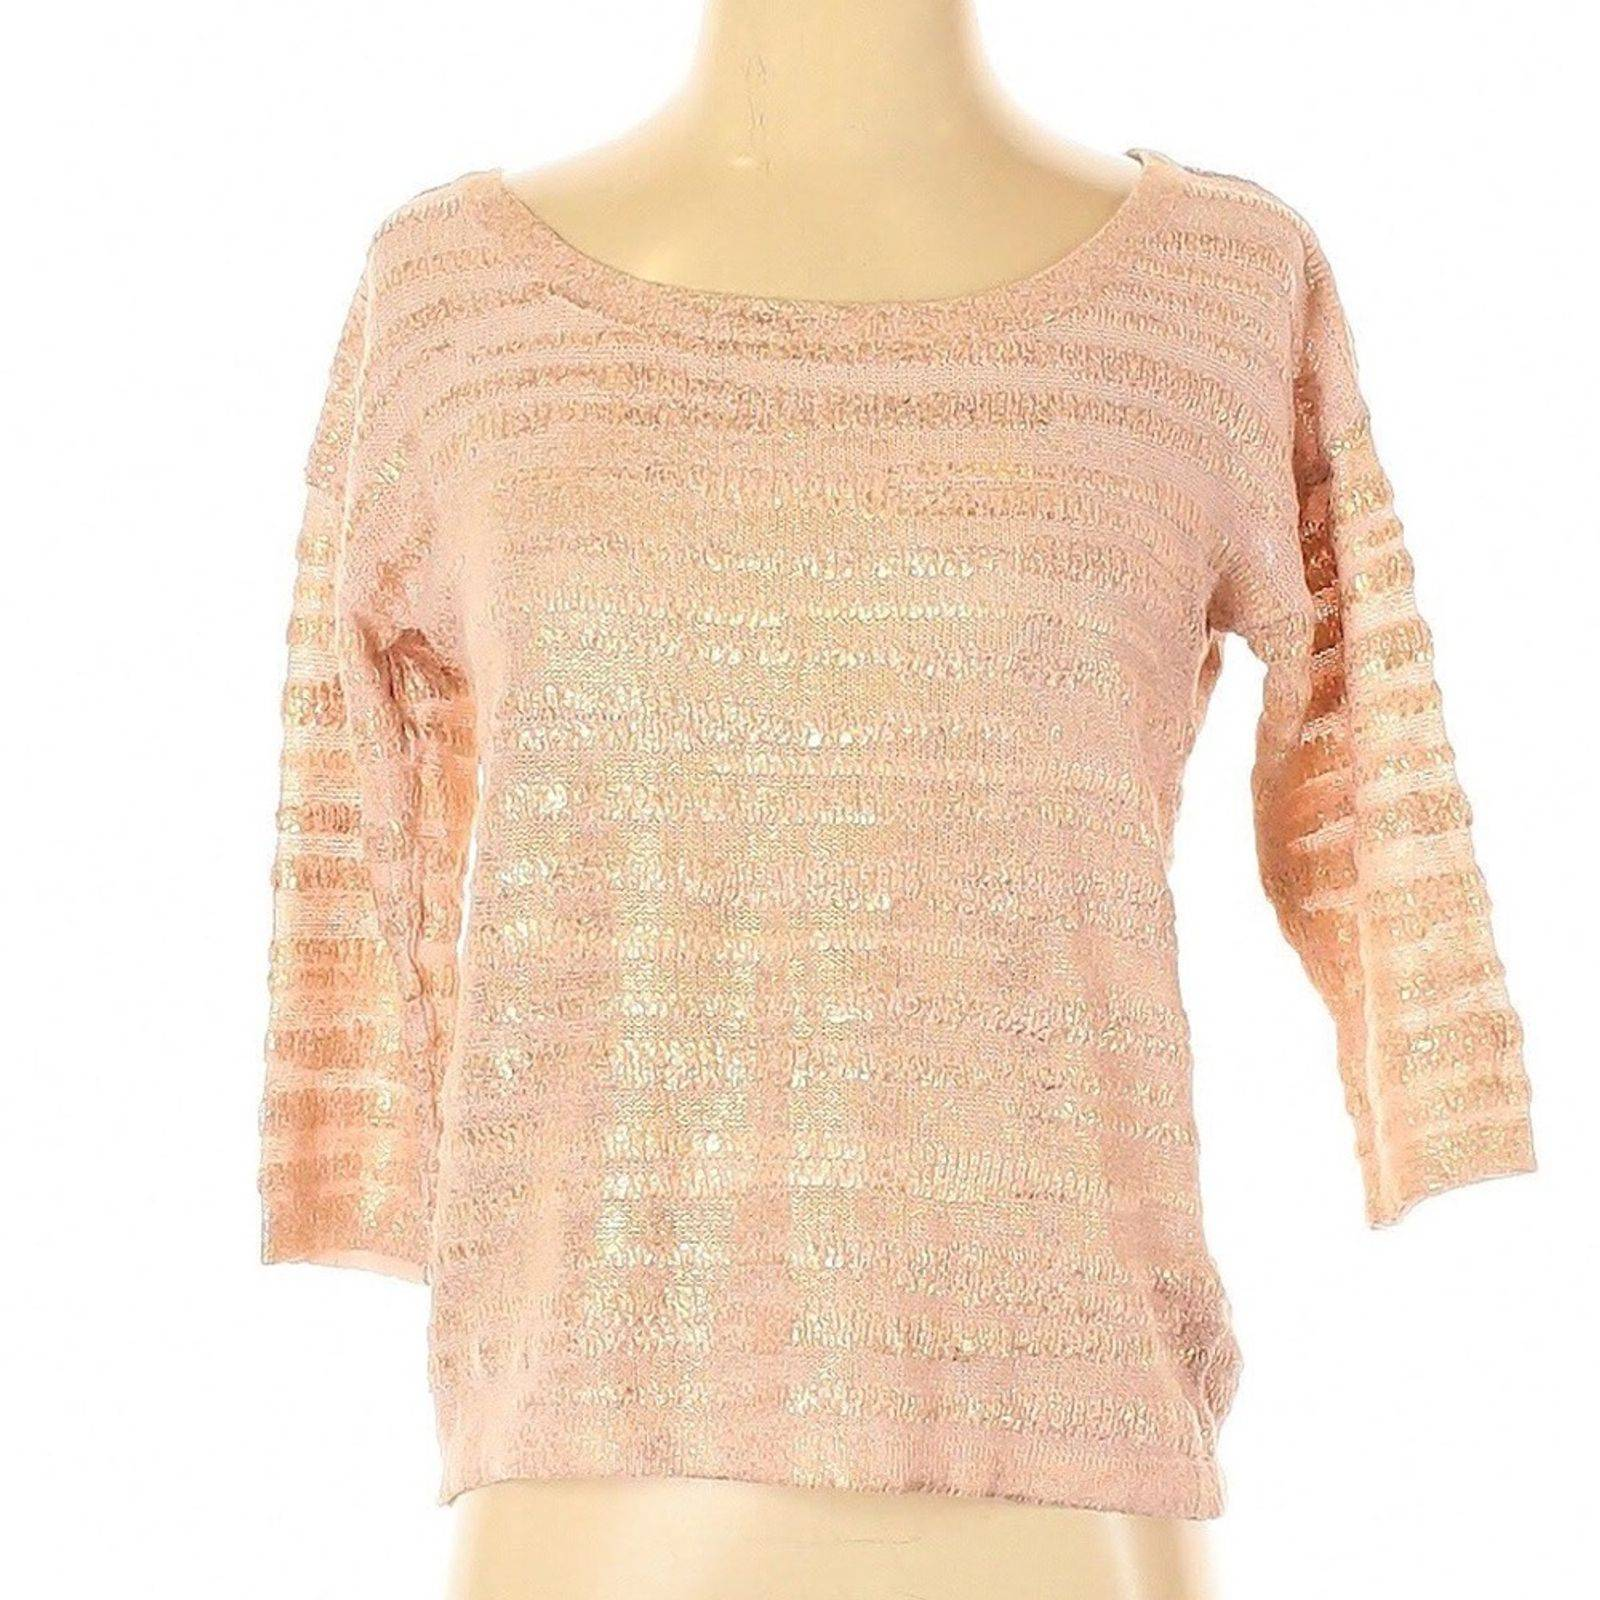 [9-11] H&M | pink & gold striped sweater